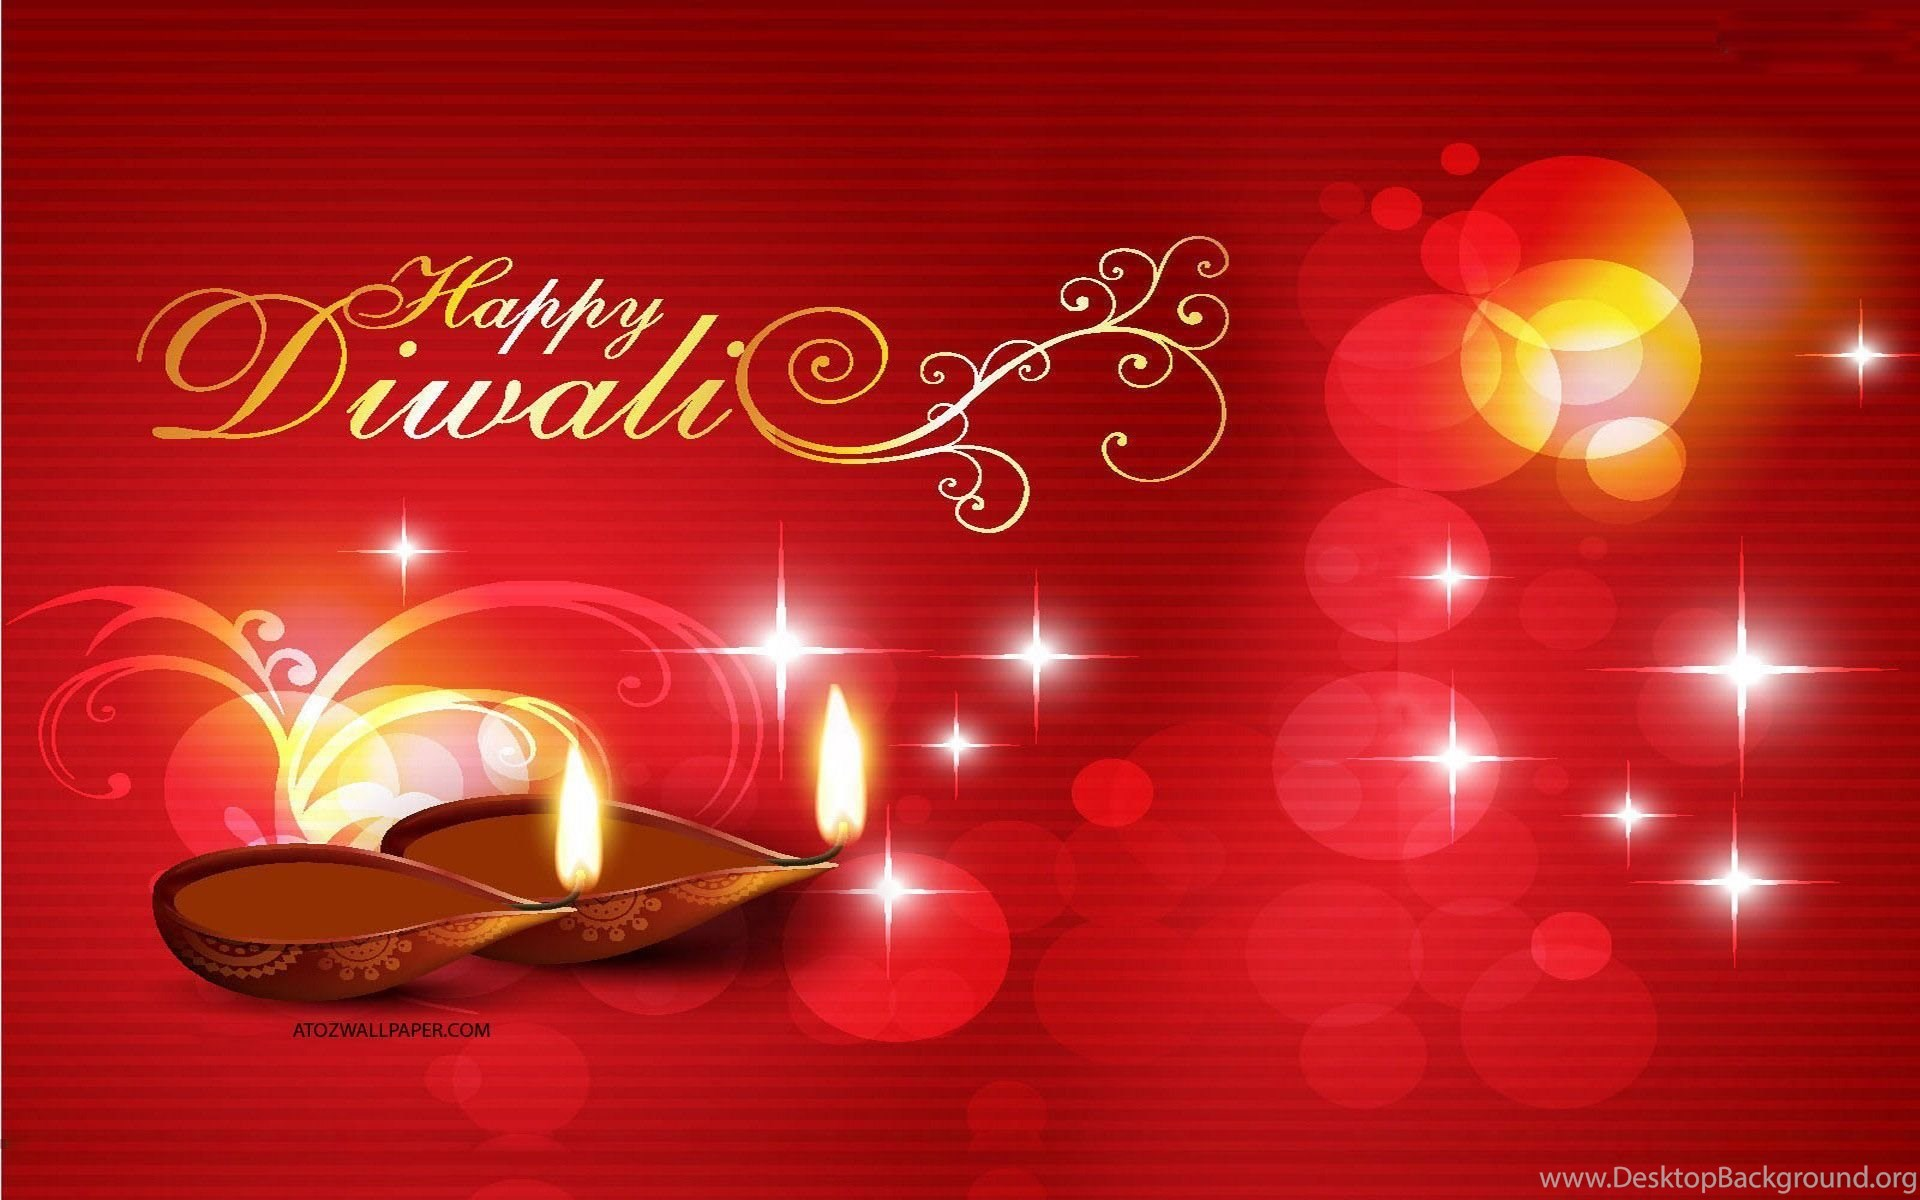 Fantastic Wallpaper Love Diwali - 131694_1080p-hd-happy-diwali-hd-wallpapers-free-atozwallpapers_1920x1200_h  Snapshot_94241.jpg